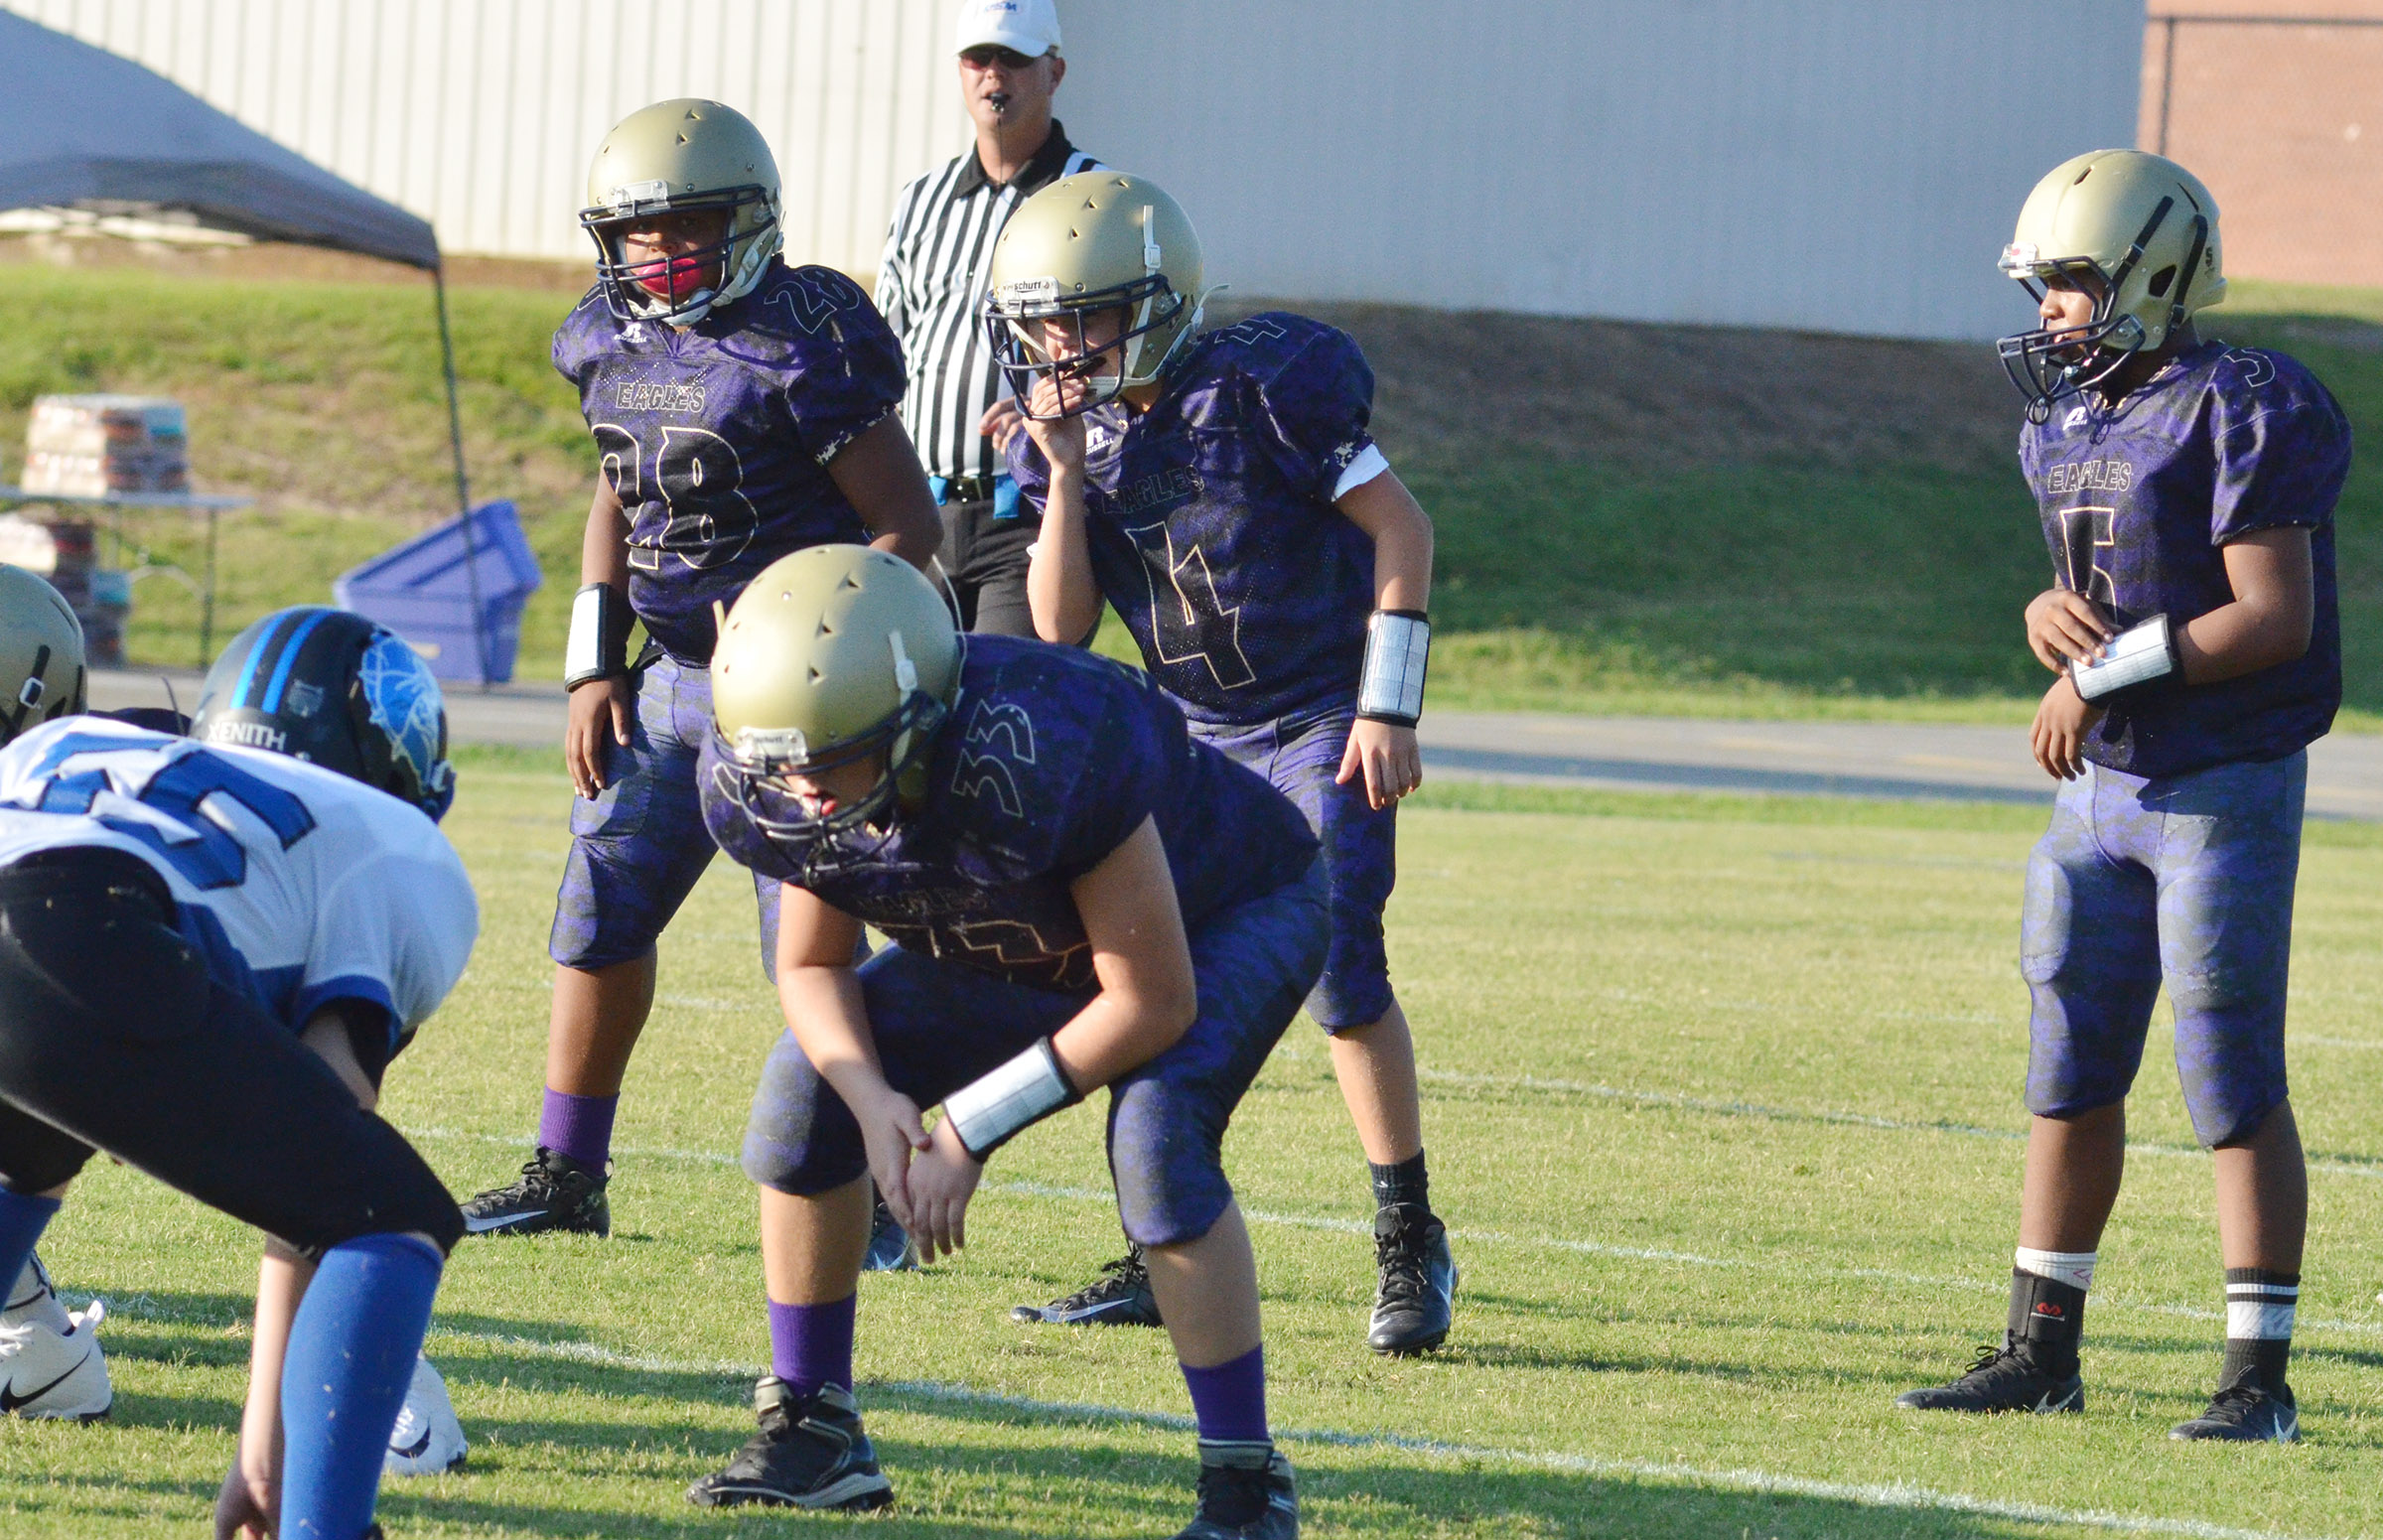 From left, CMS seventh-graders Keondre Weathers, Konner Forbis and Deondre Weathers get ready for the play.